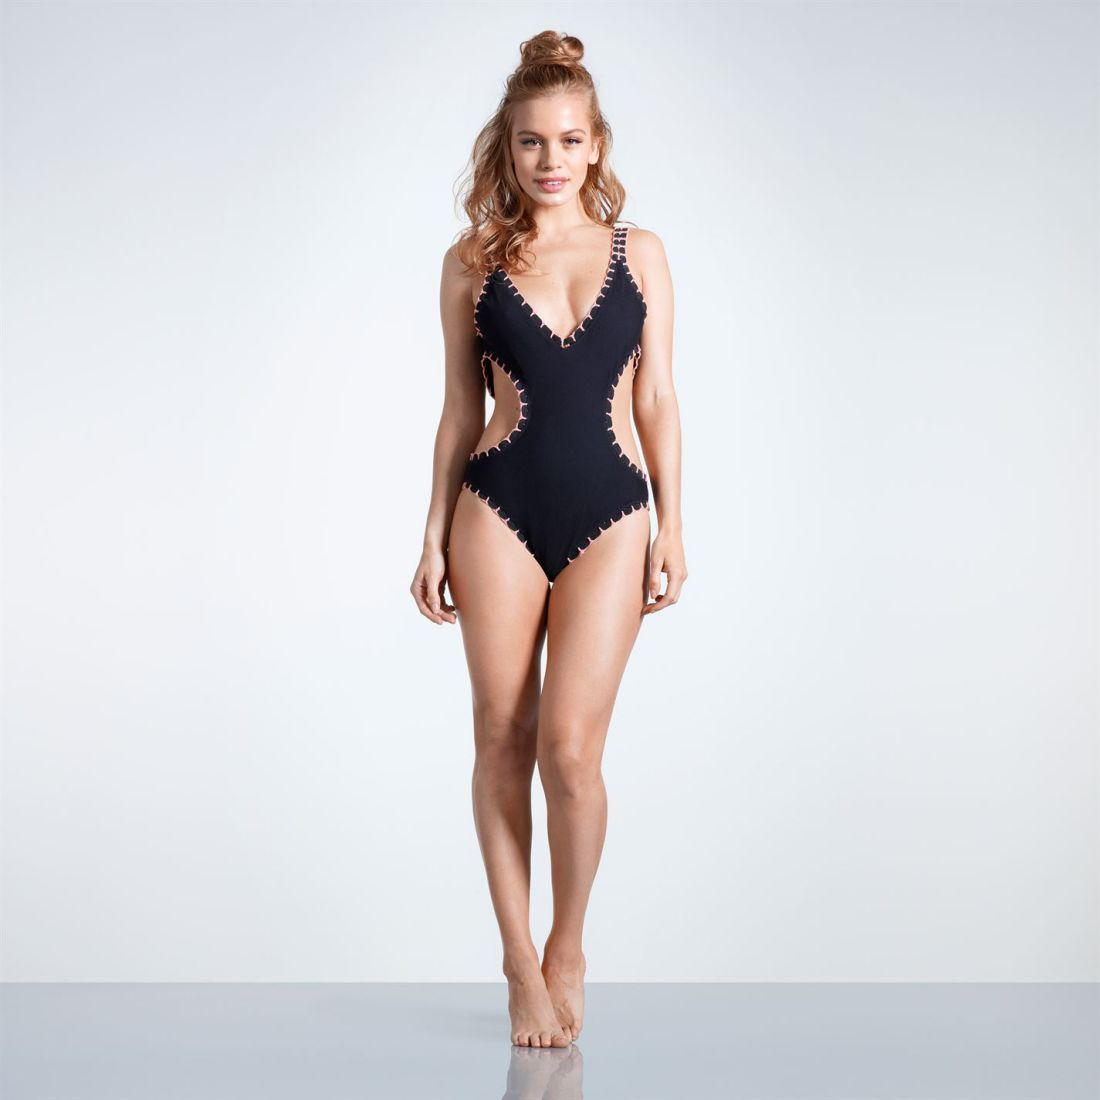 7ac24c064 USA Pro CutOut Swim Suit Ladies Swimming Pool Seaside Swimsuit Mesh ...